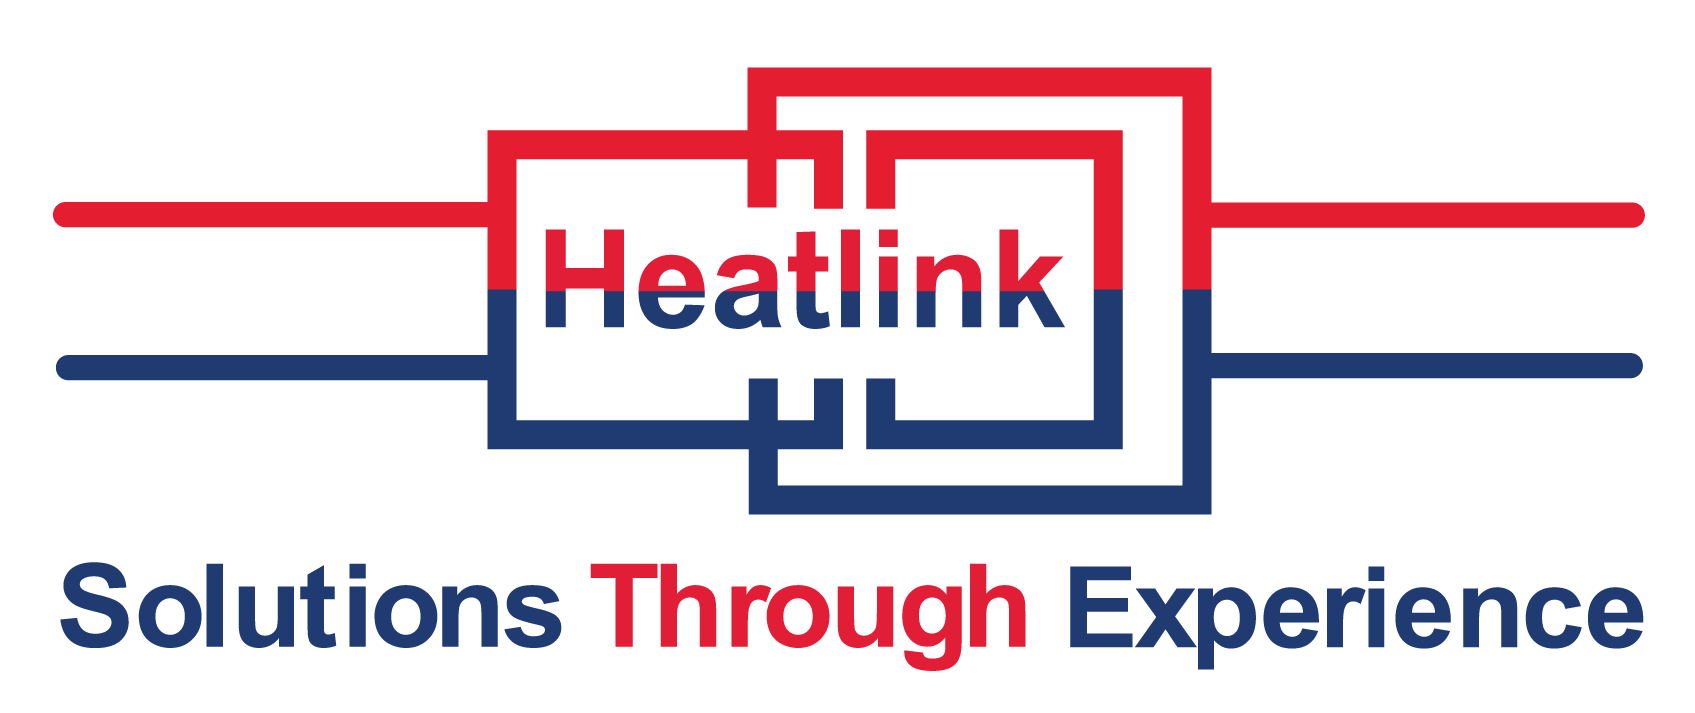 Heatlink: Heat Interface Unit (HIU) Manufacturer